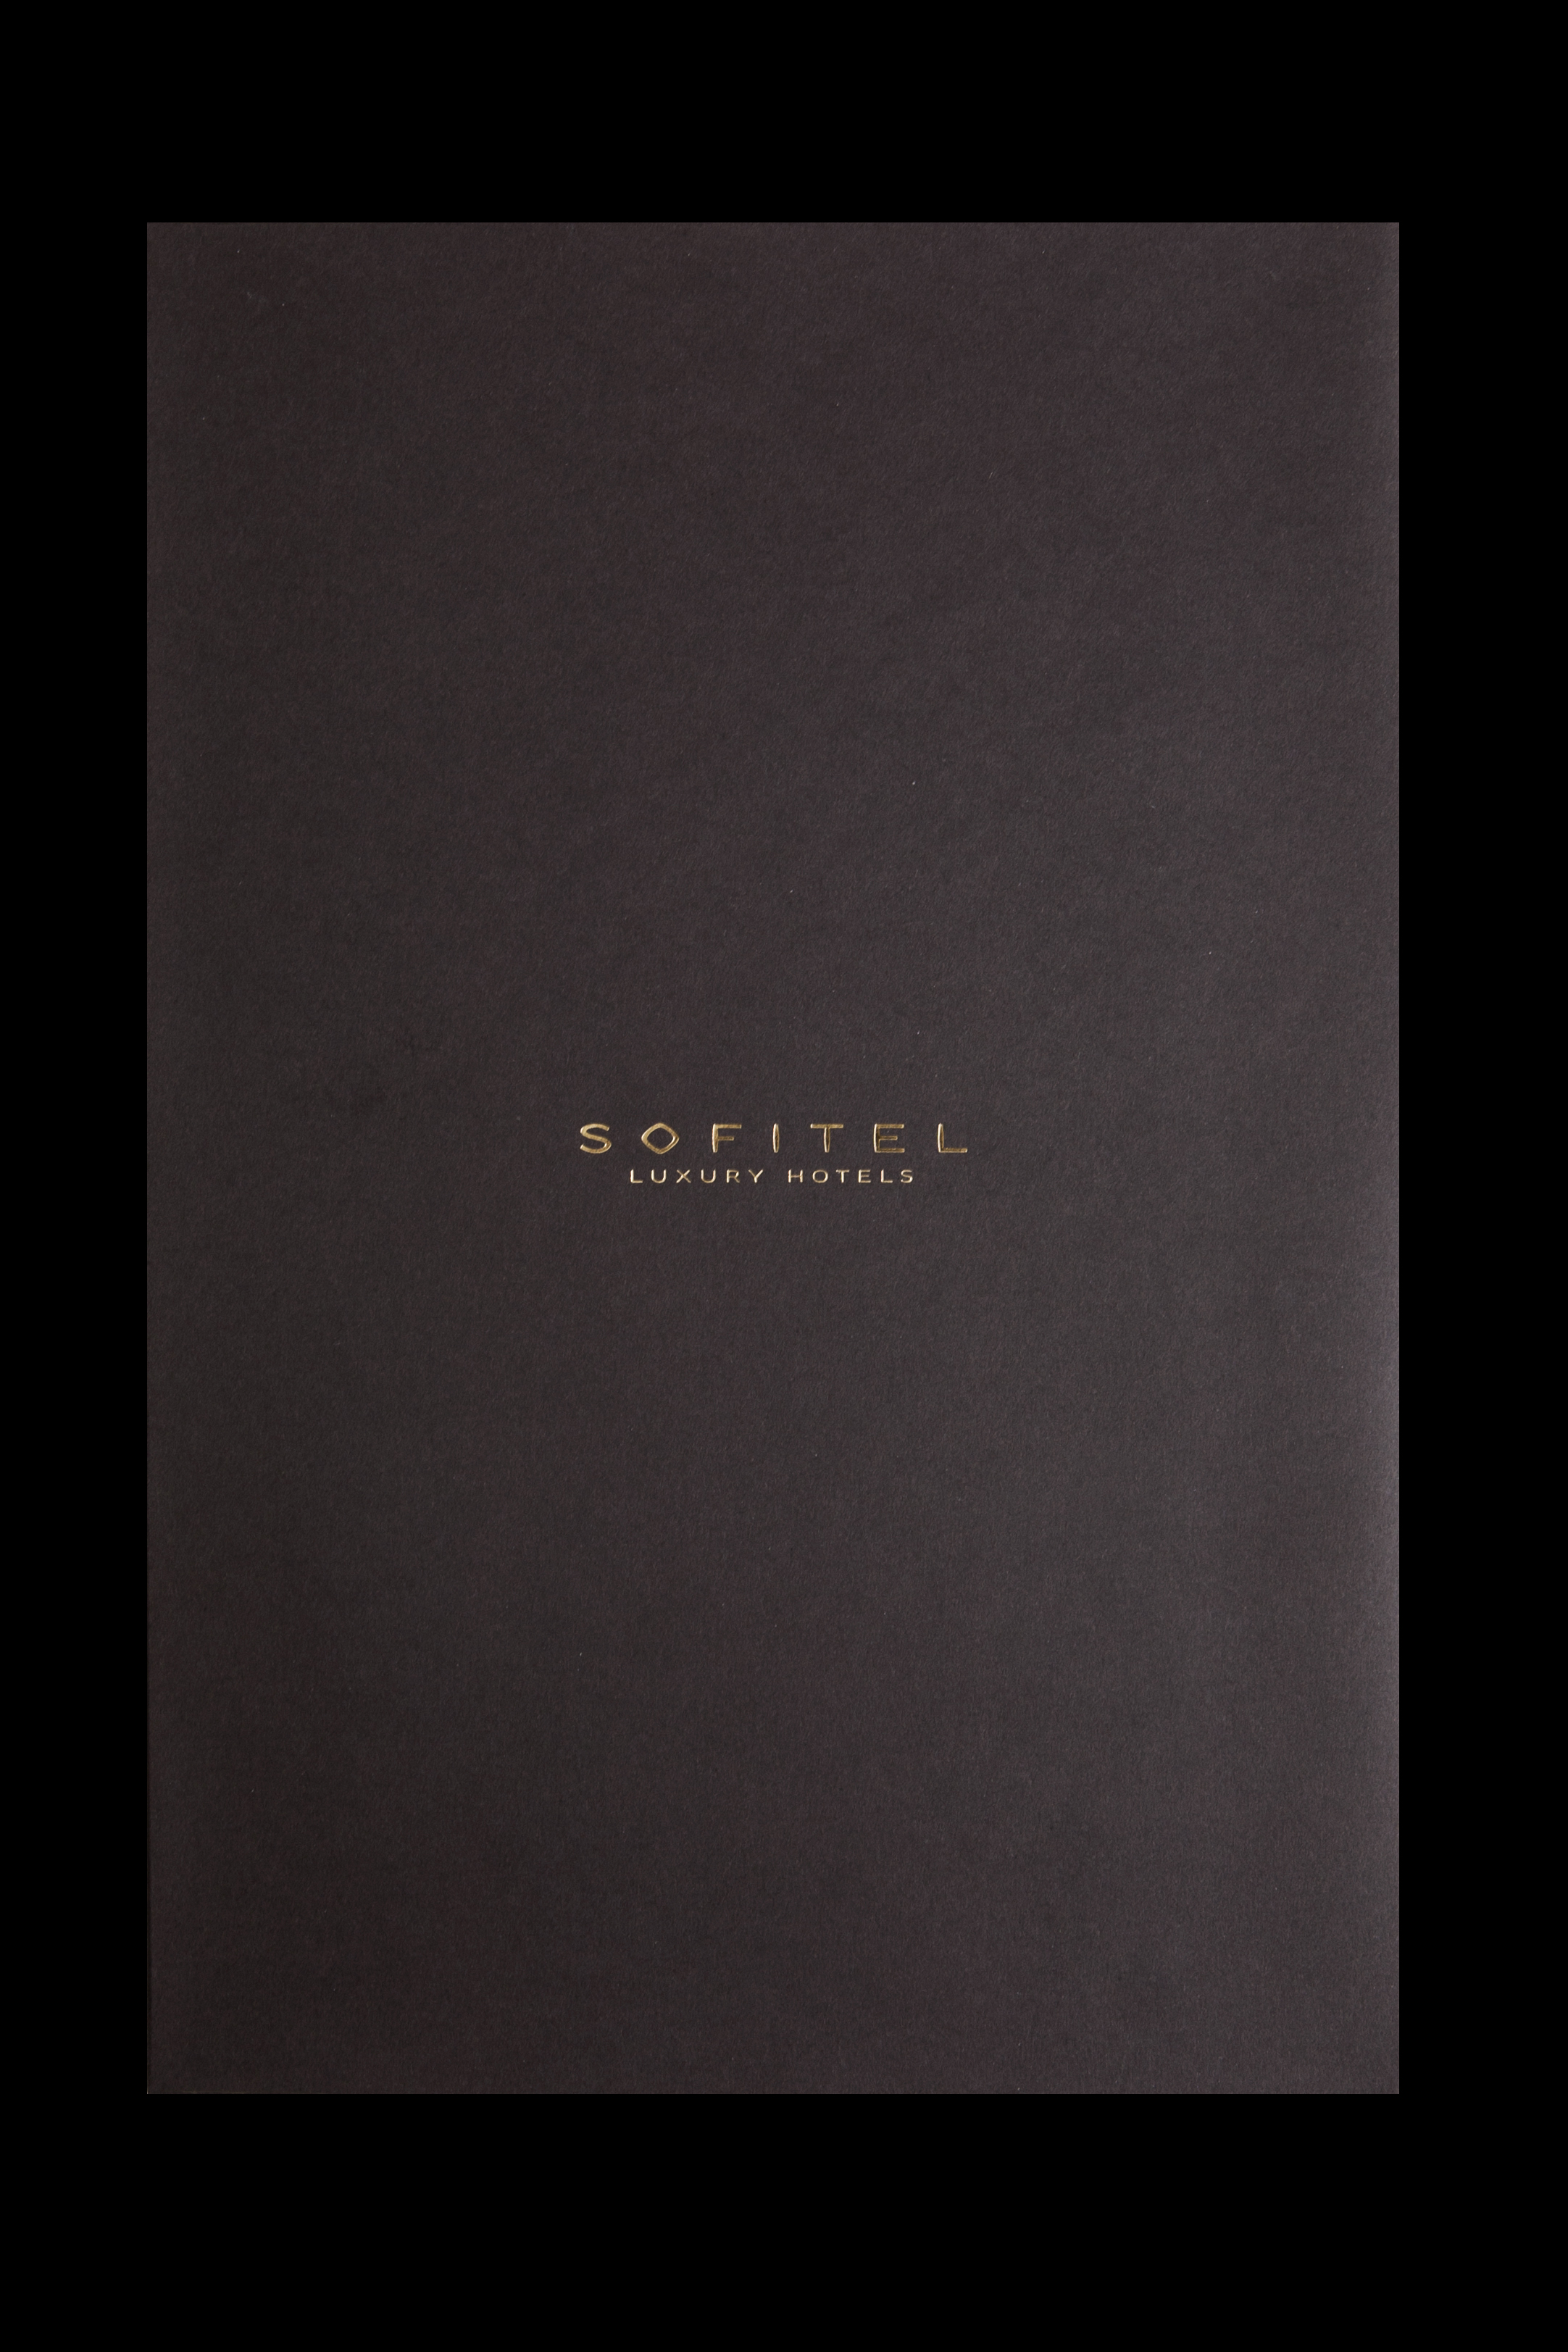 FOURREAU SOFITEL_9